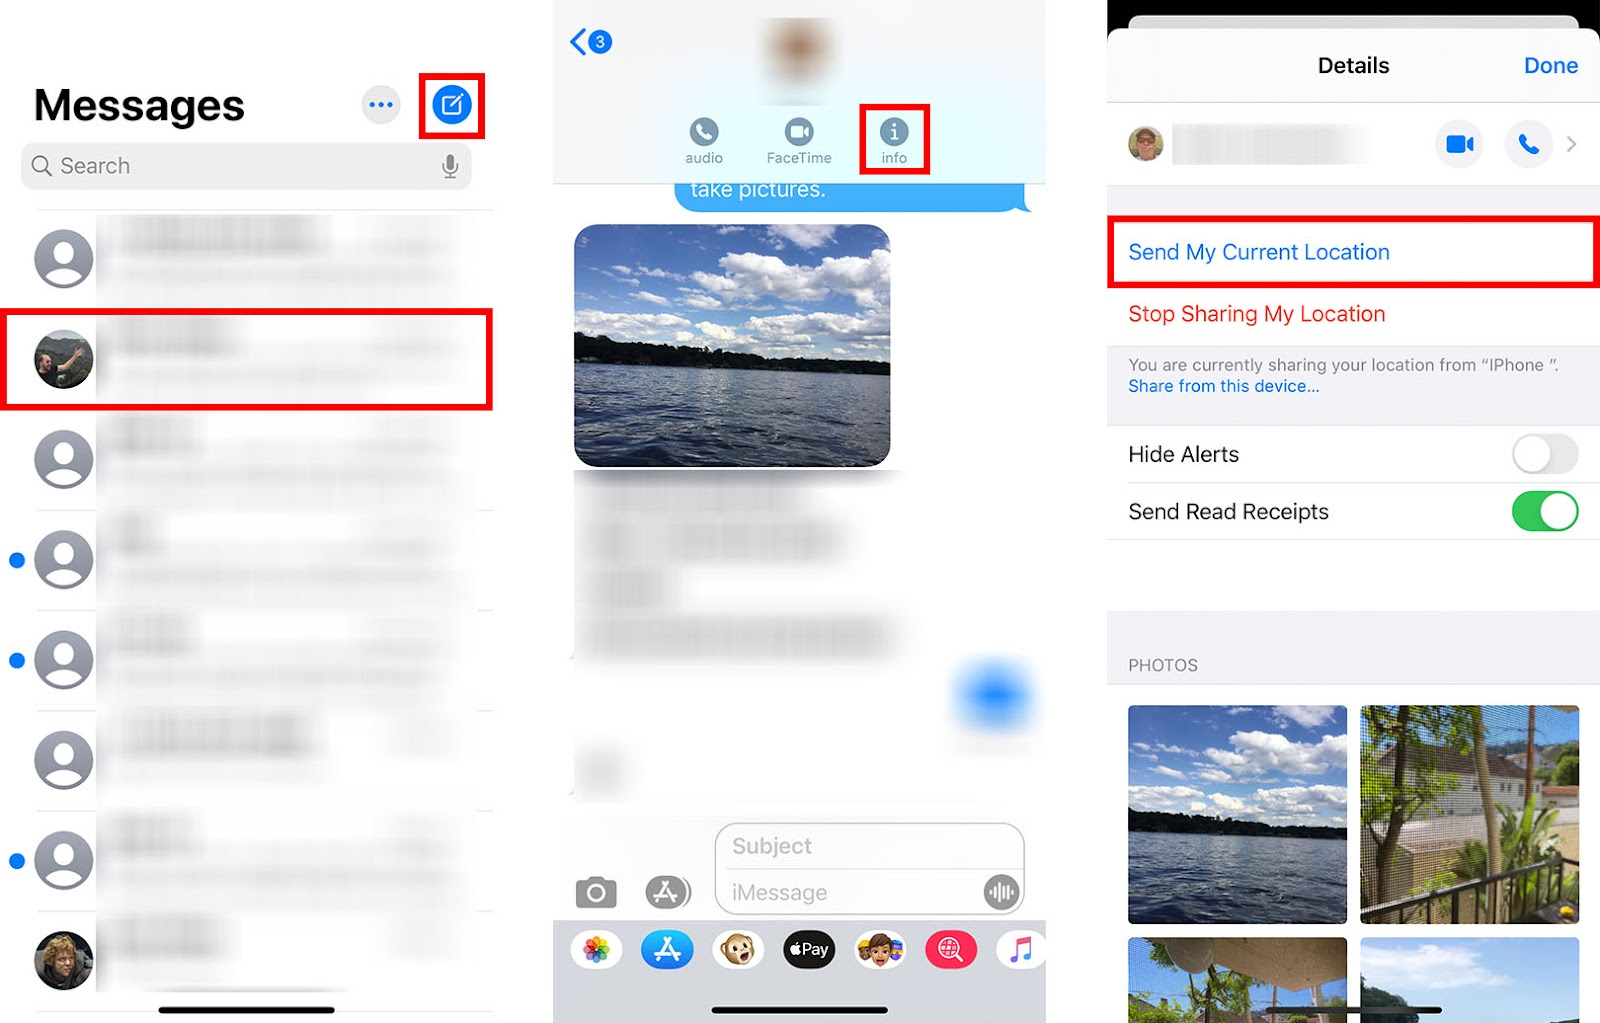 How to Share Your Location on iPhone via Messages